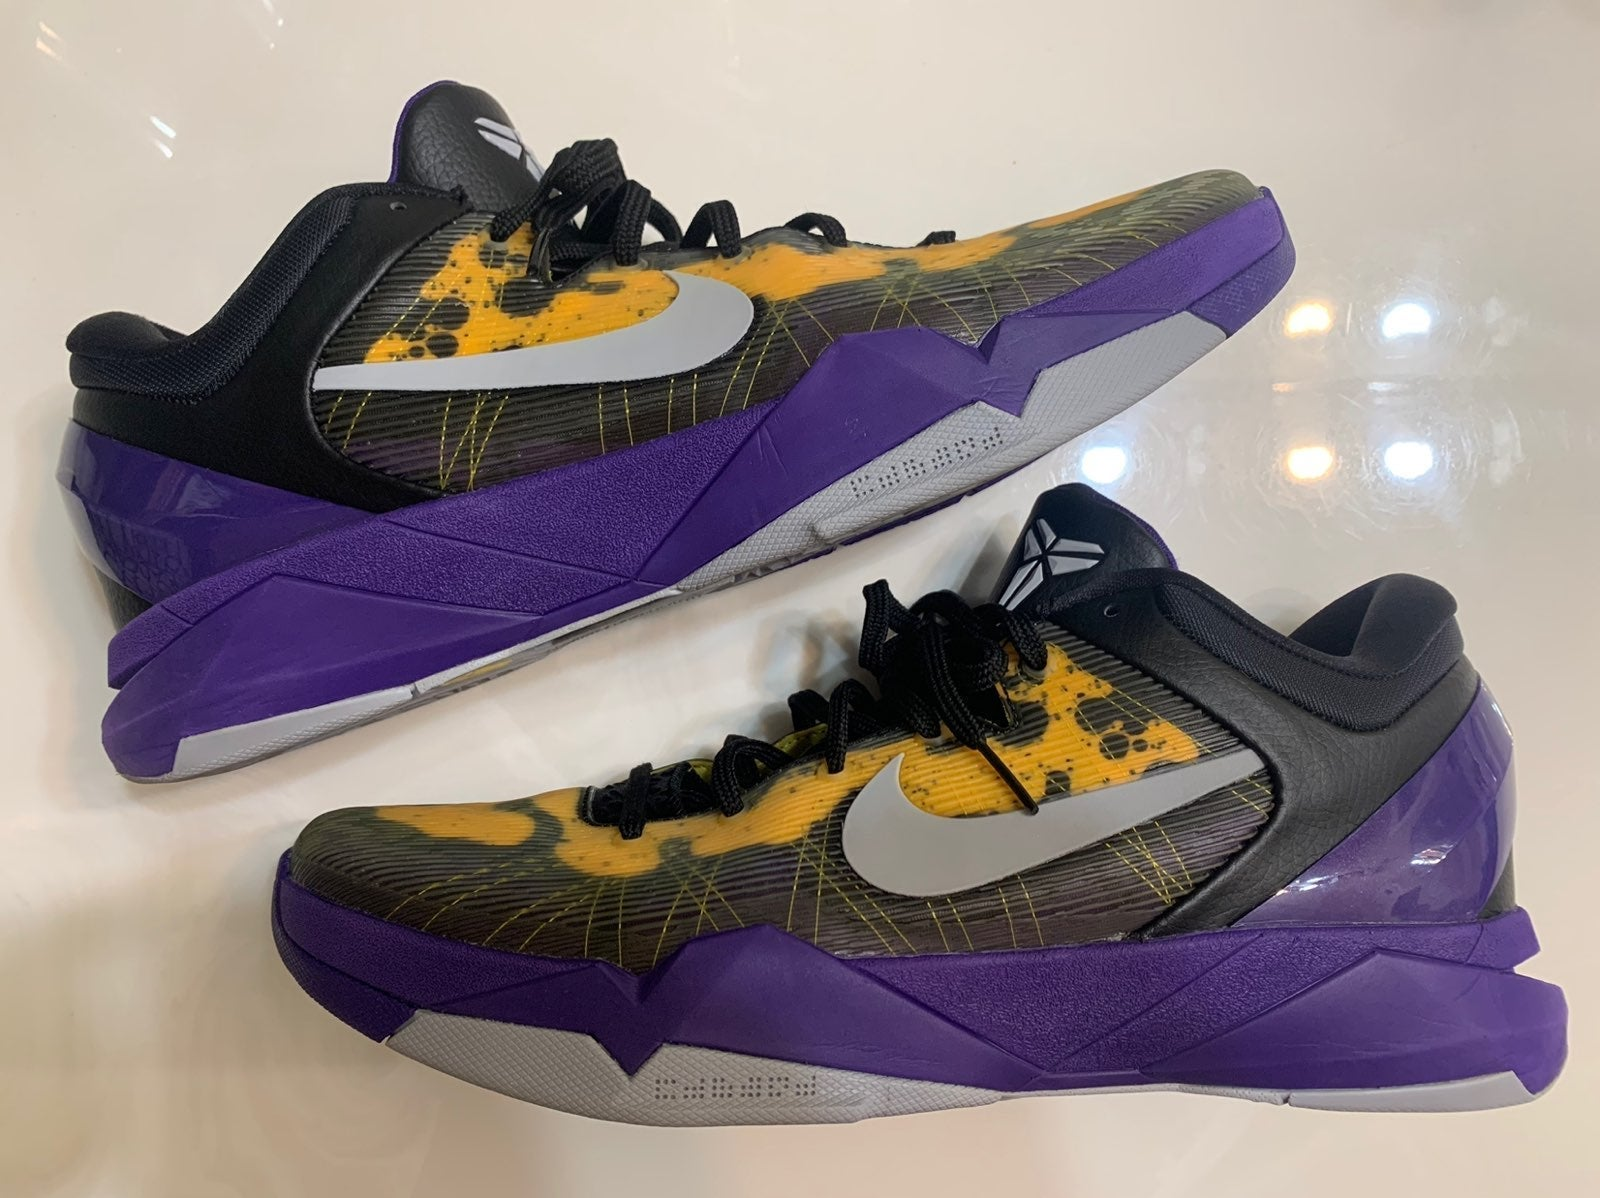 NIKE KOBE 7 VII POISON DART LAKERS SHOES